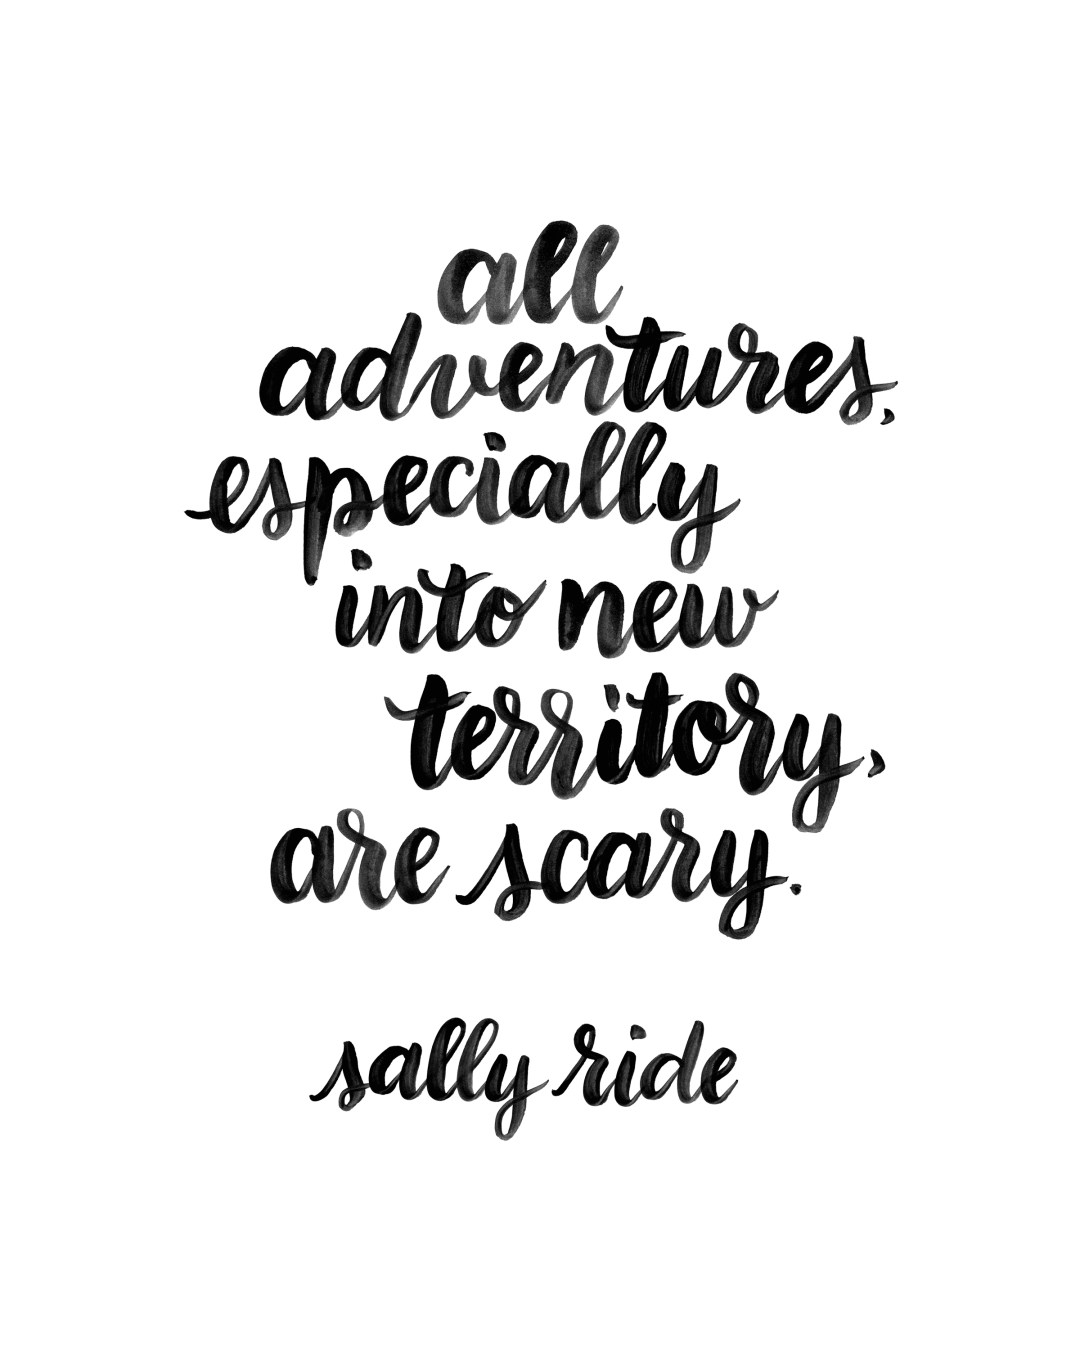 Sally Ride Quote - www.randomolive.com